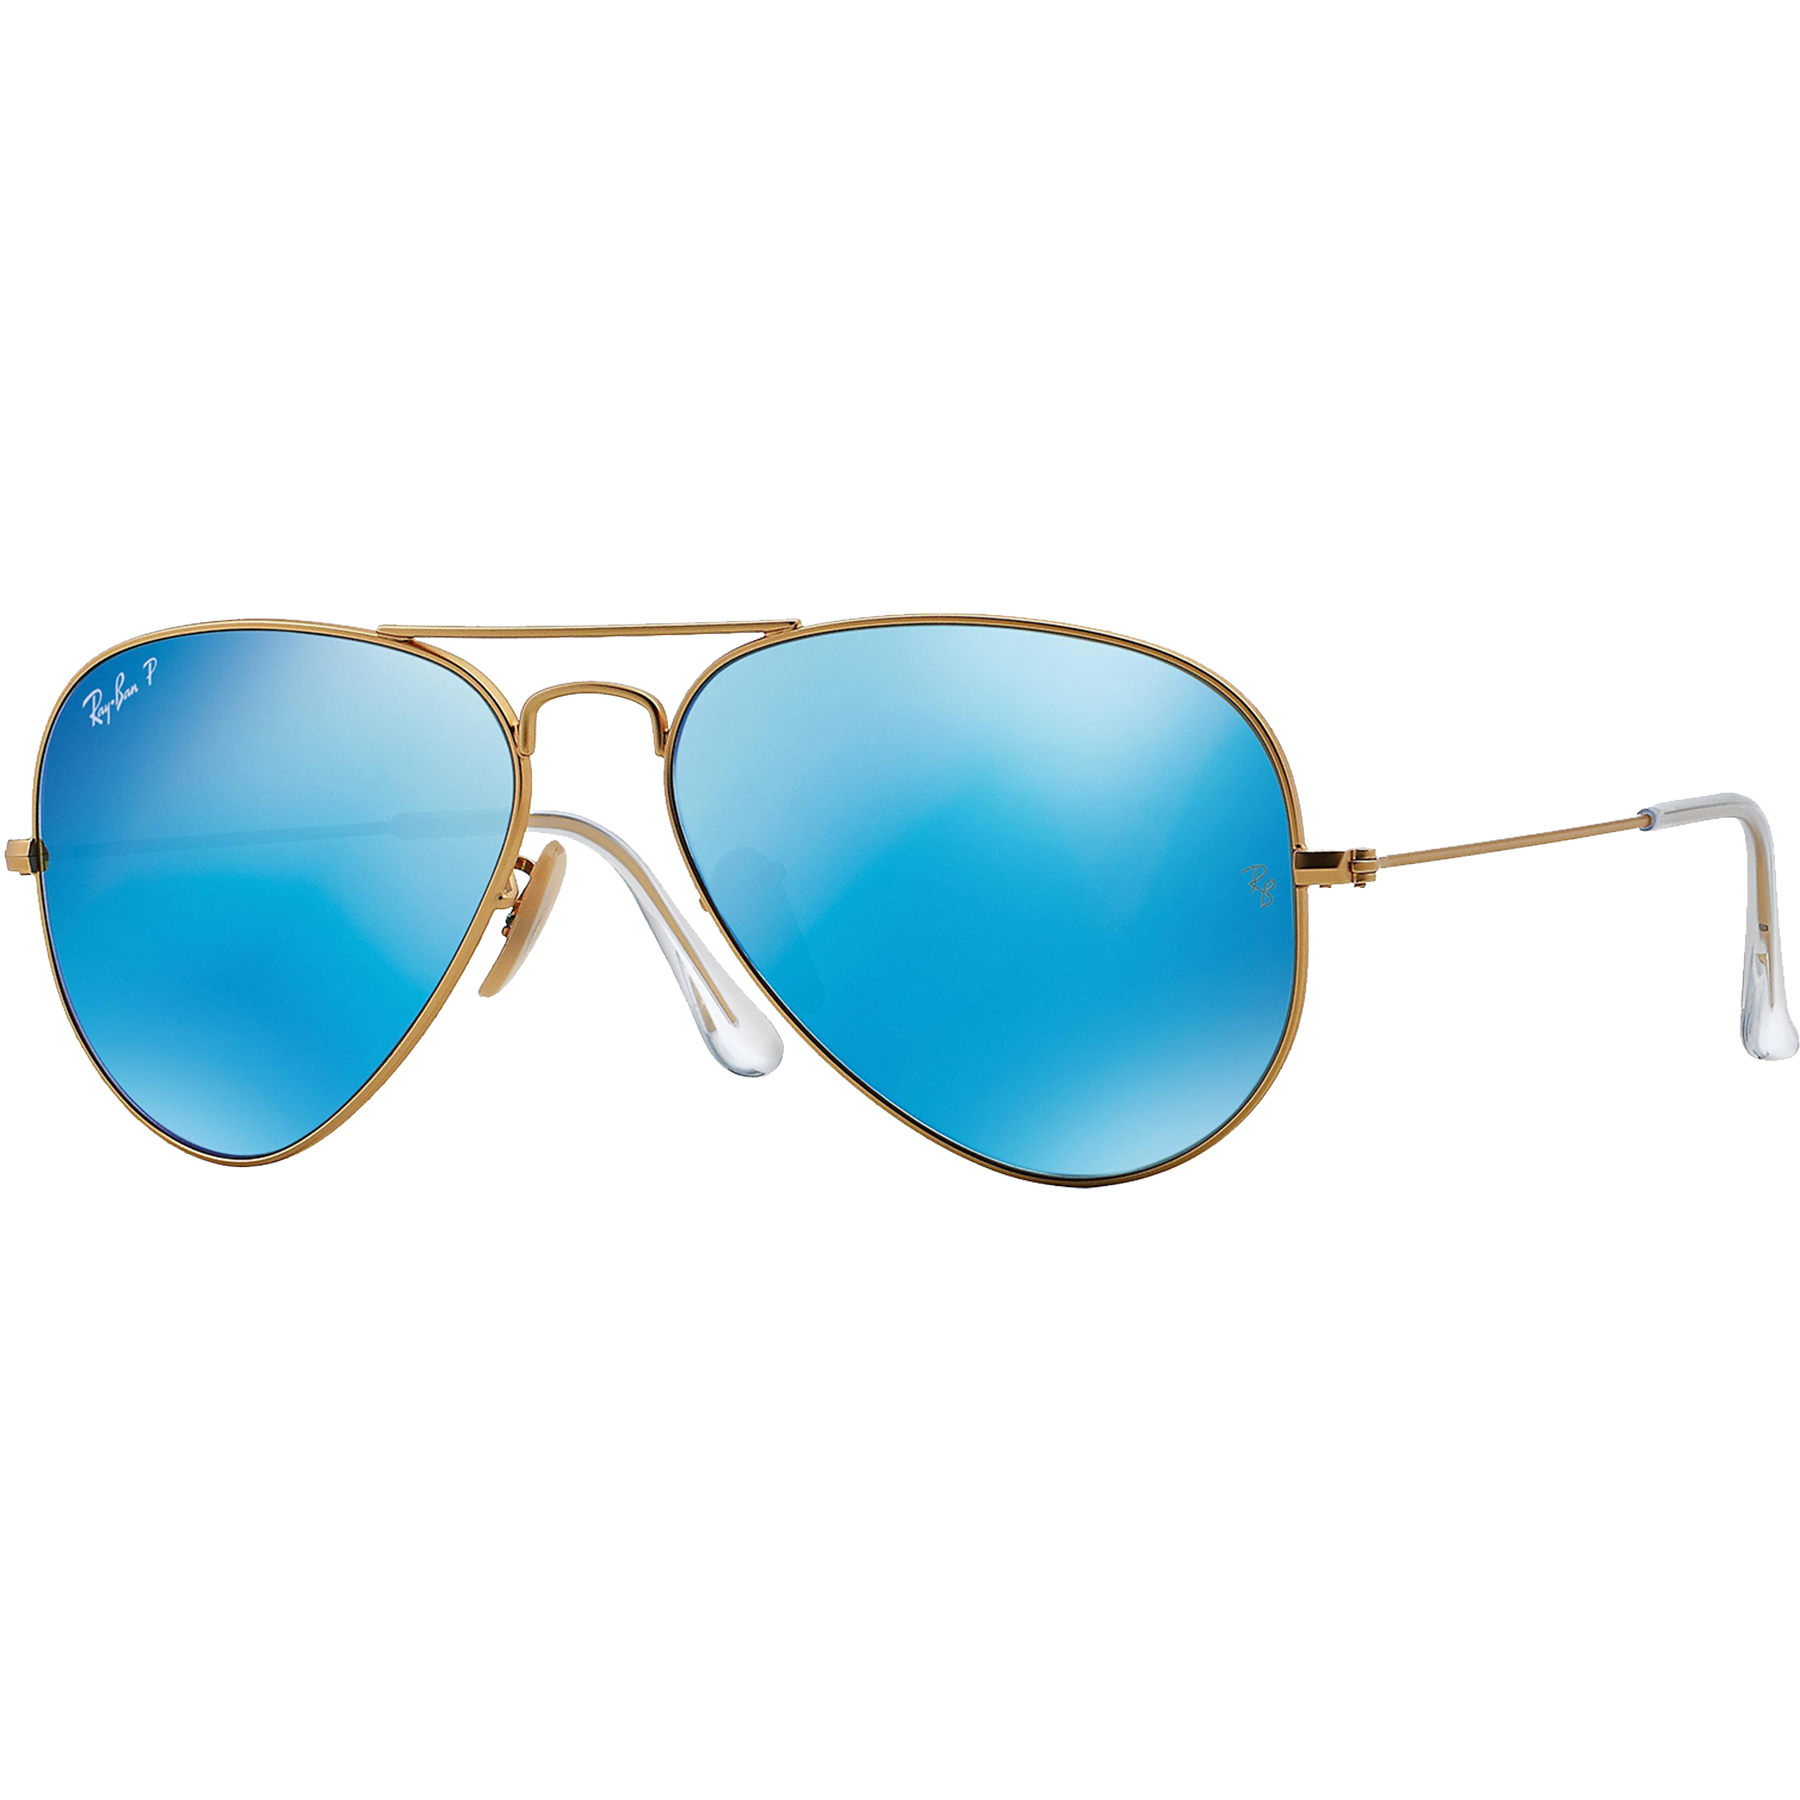 Ray-Ban Polarized Aviator Sunglasses - Matte Gold  Blue Mirror  0RB30251124L ca74309e2d